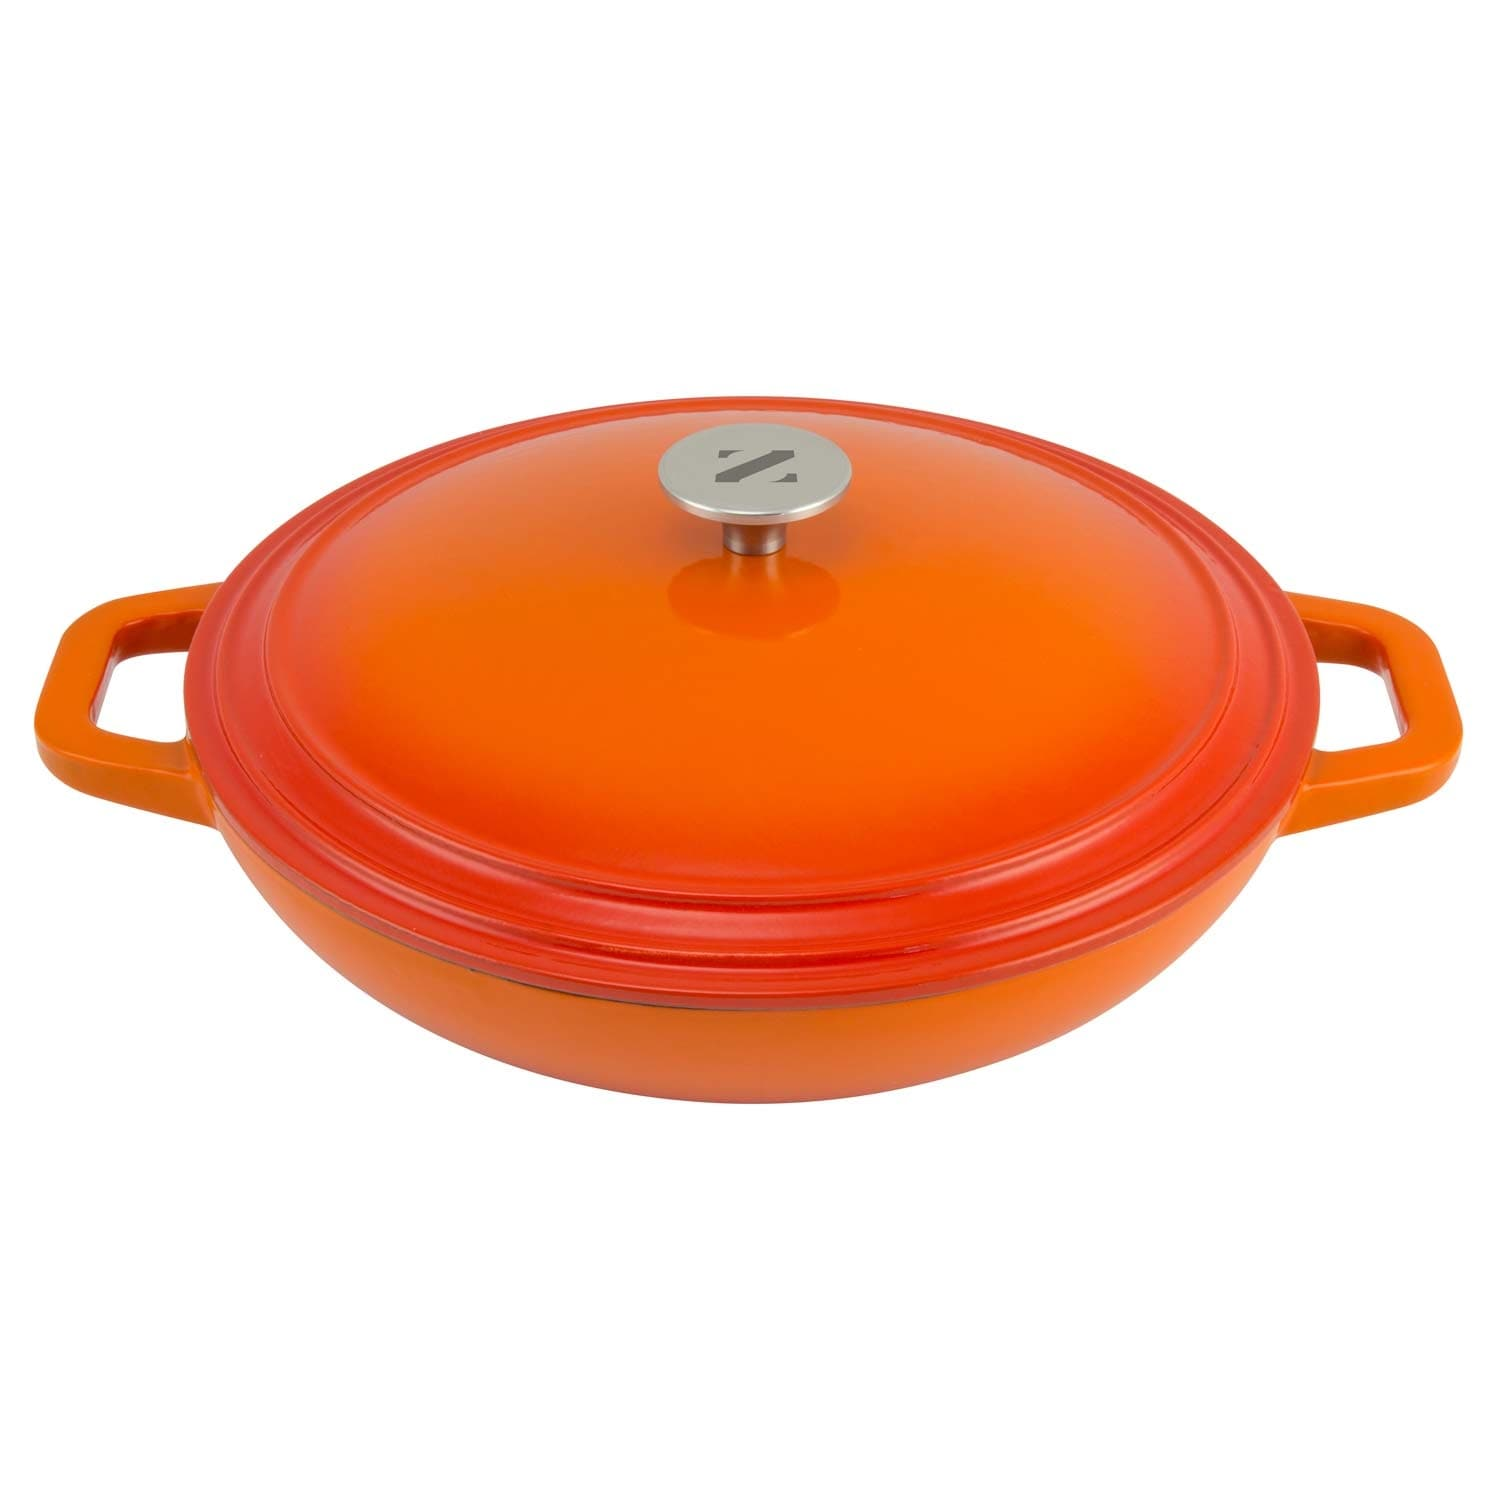 Cast Iron Casserole Dish Zelancio Cookware 3 Quart Enameled Cast Iron Casserole Dish With Lid Perfect For Brazing Slow Cooking Simmering And Baking